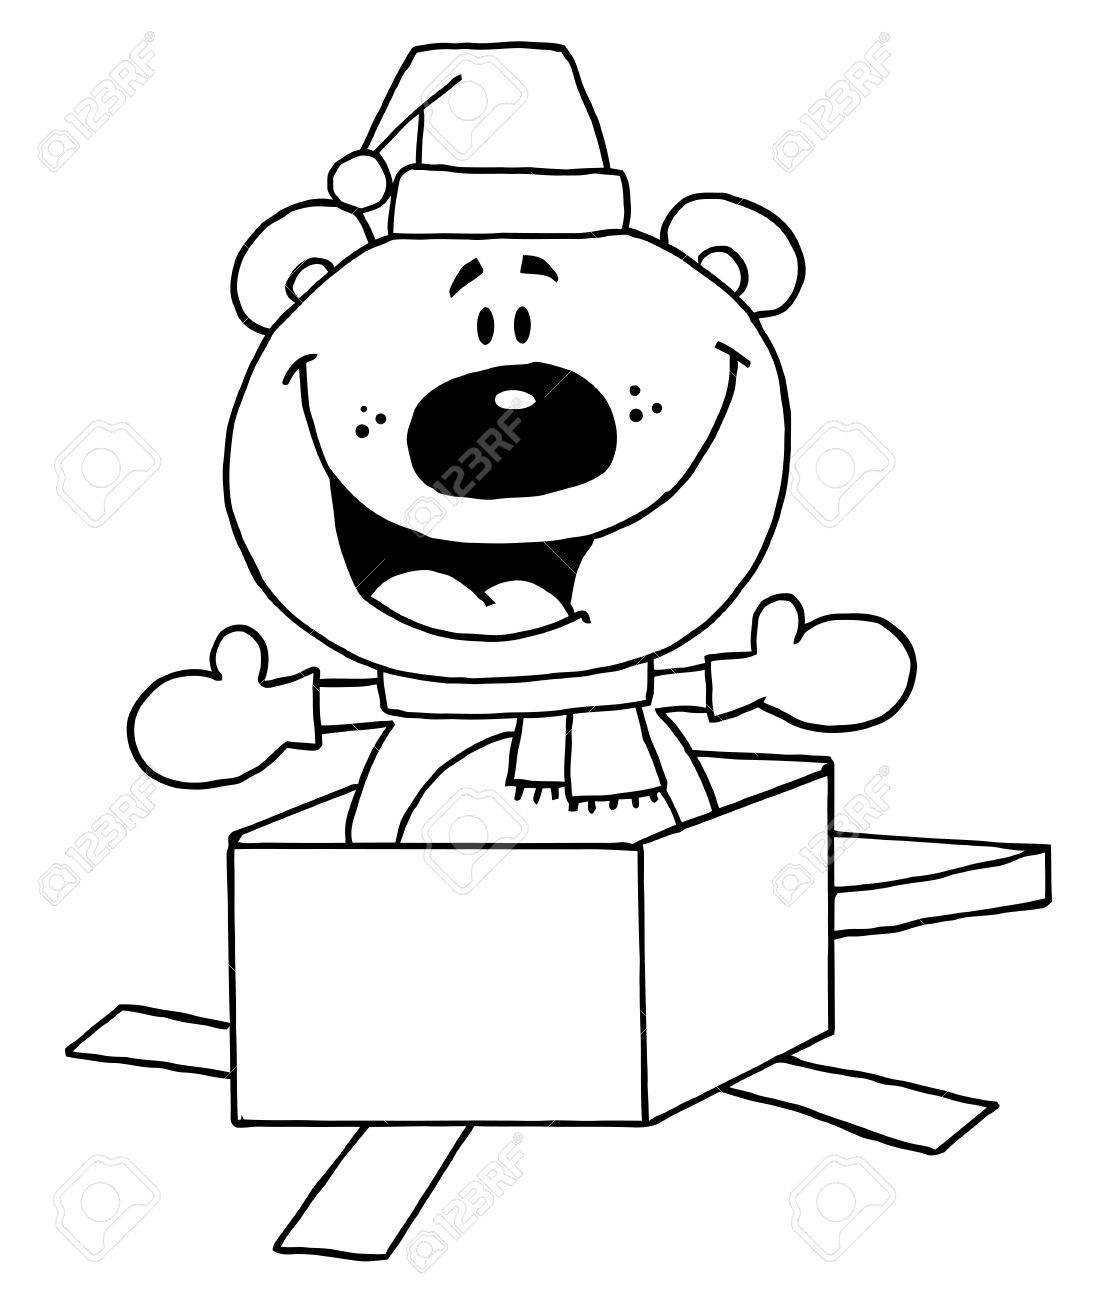 outline of a christmas polar bear popping out of a gift box